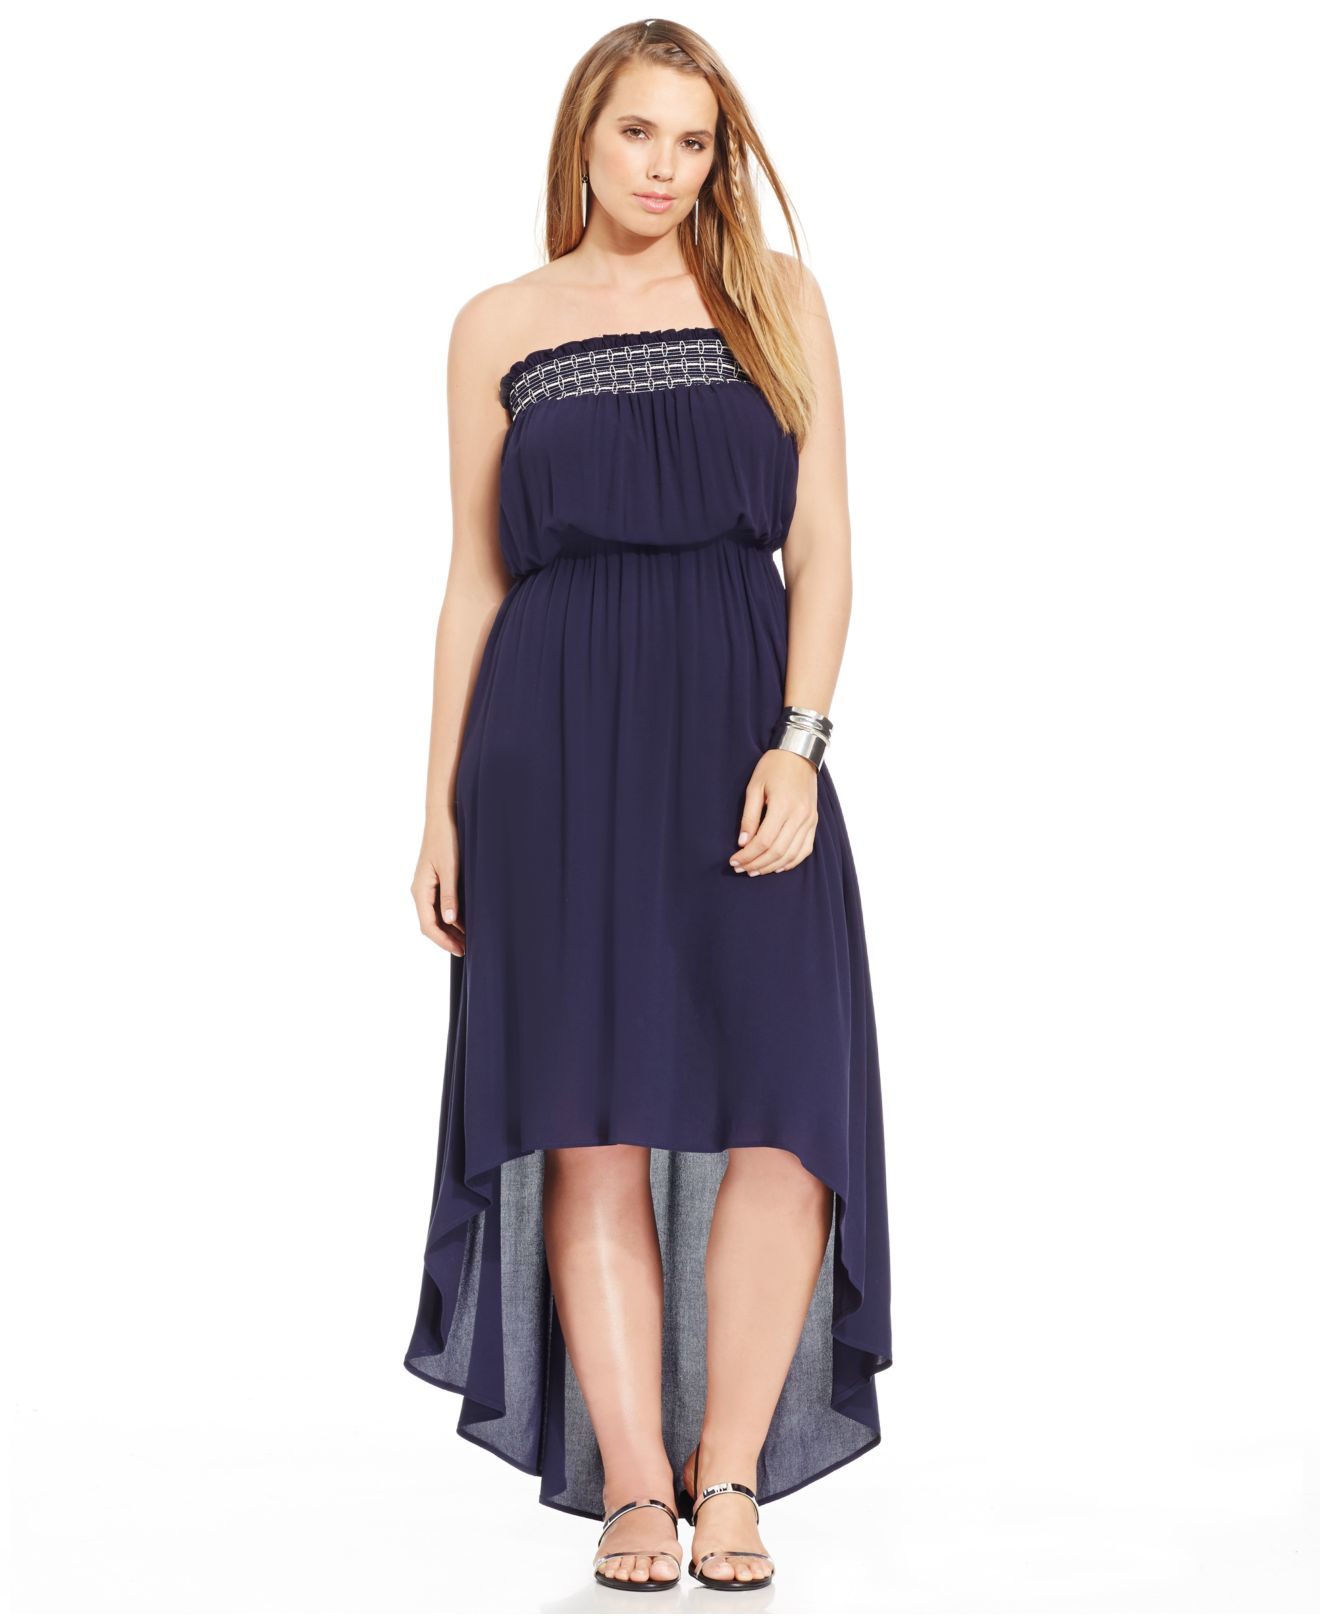 Soprano Plus Size Strapless High-low Maxi Dress in Blue | Lyst